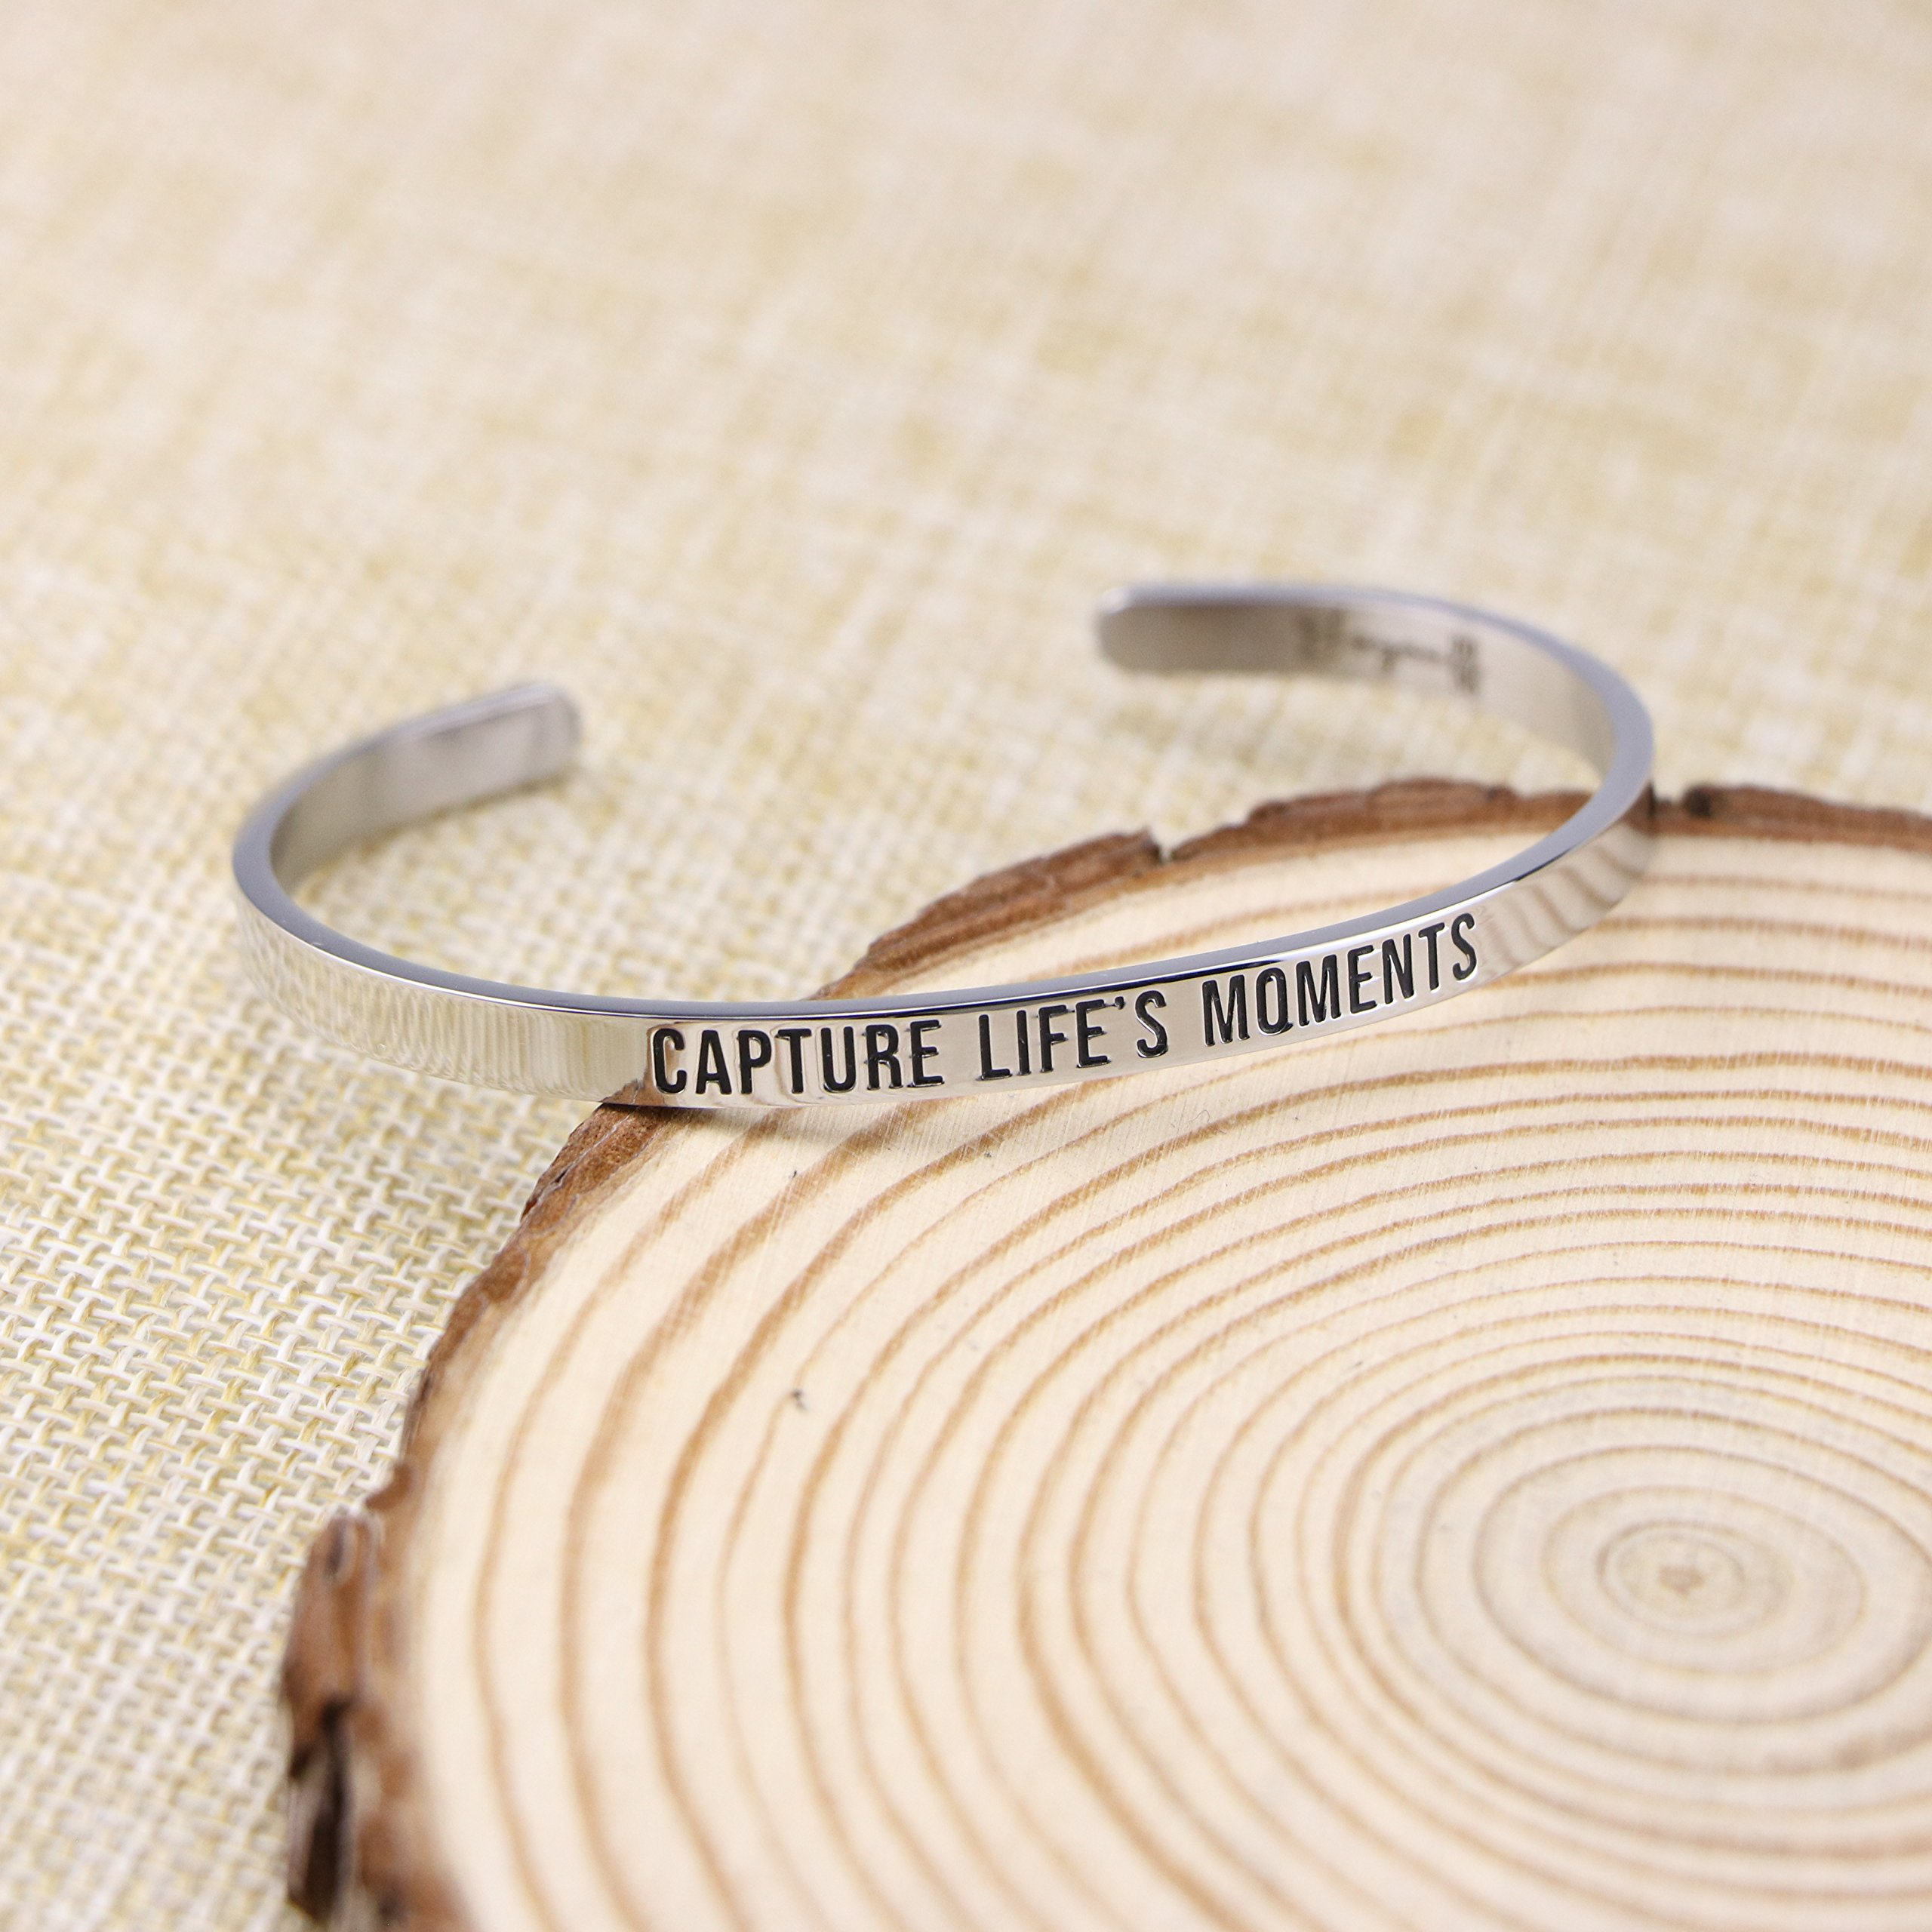 Joycuff New Mom Gift Mantra Cuff Bracelets Photographer Travel Jewelry Capture life's moments by Joycuff (Image #2)